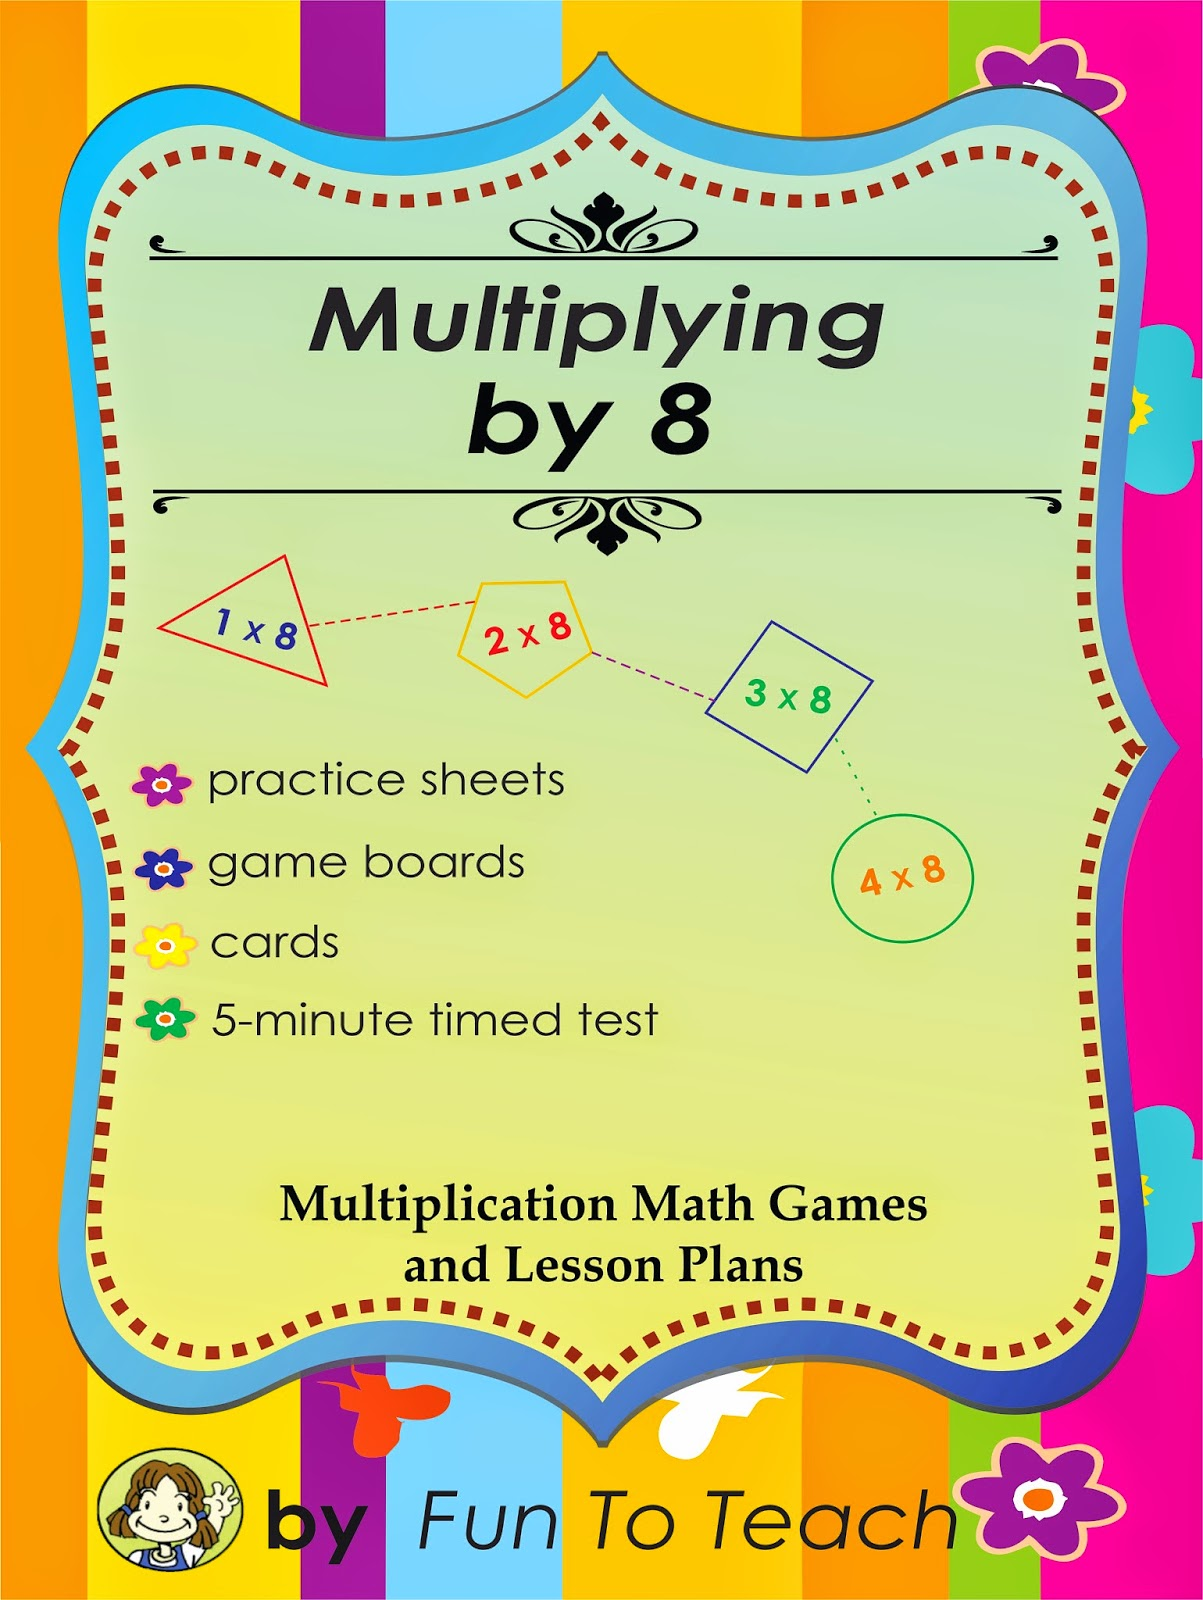 https://www.teacherspayteachers.com/Product/Multiplying-by-8-Math-Games-and-Lesson-Plan-28642